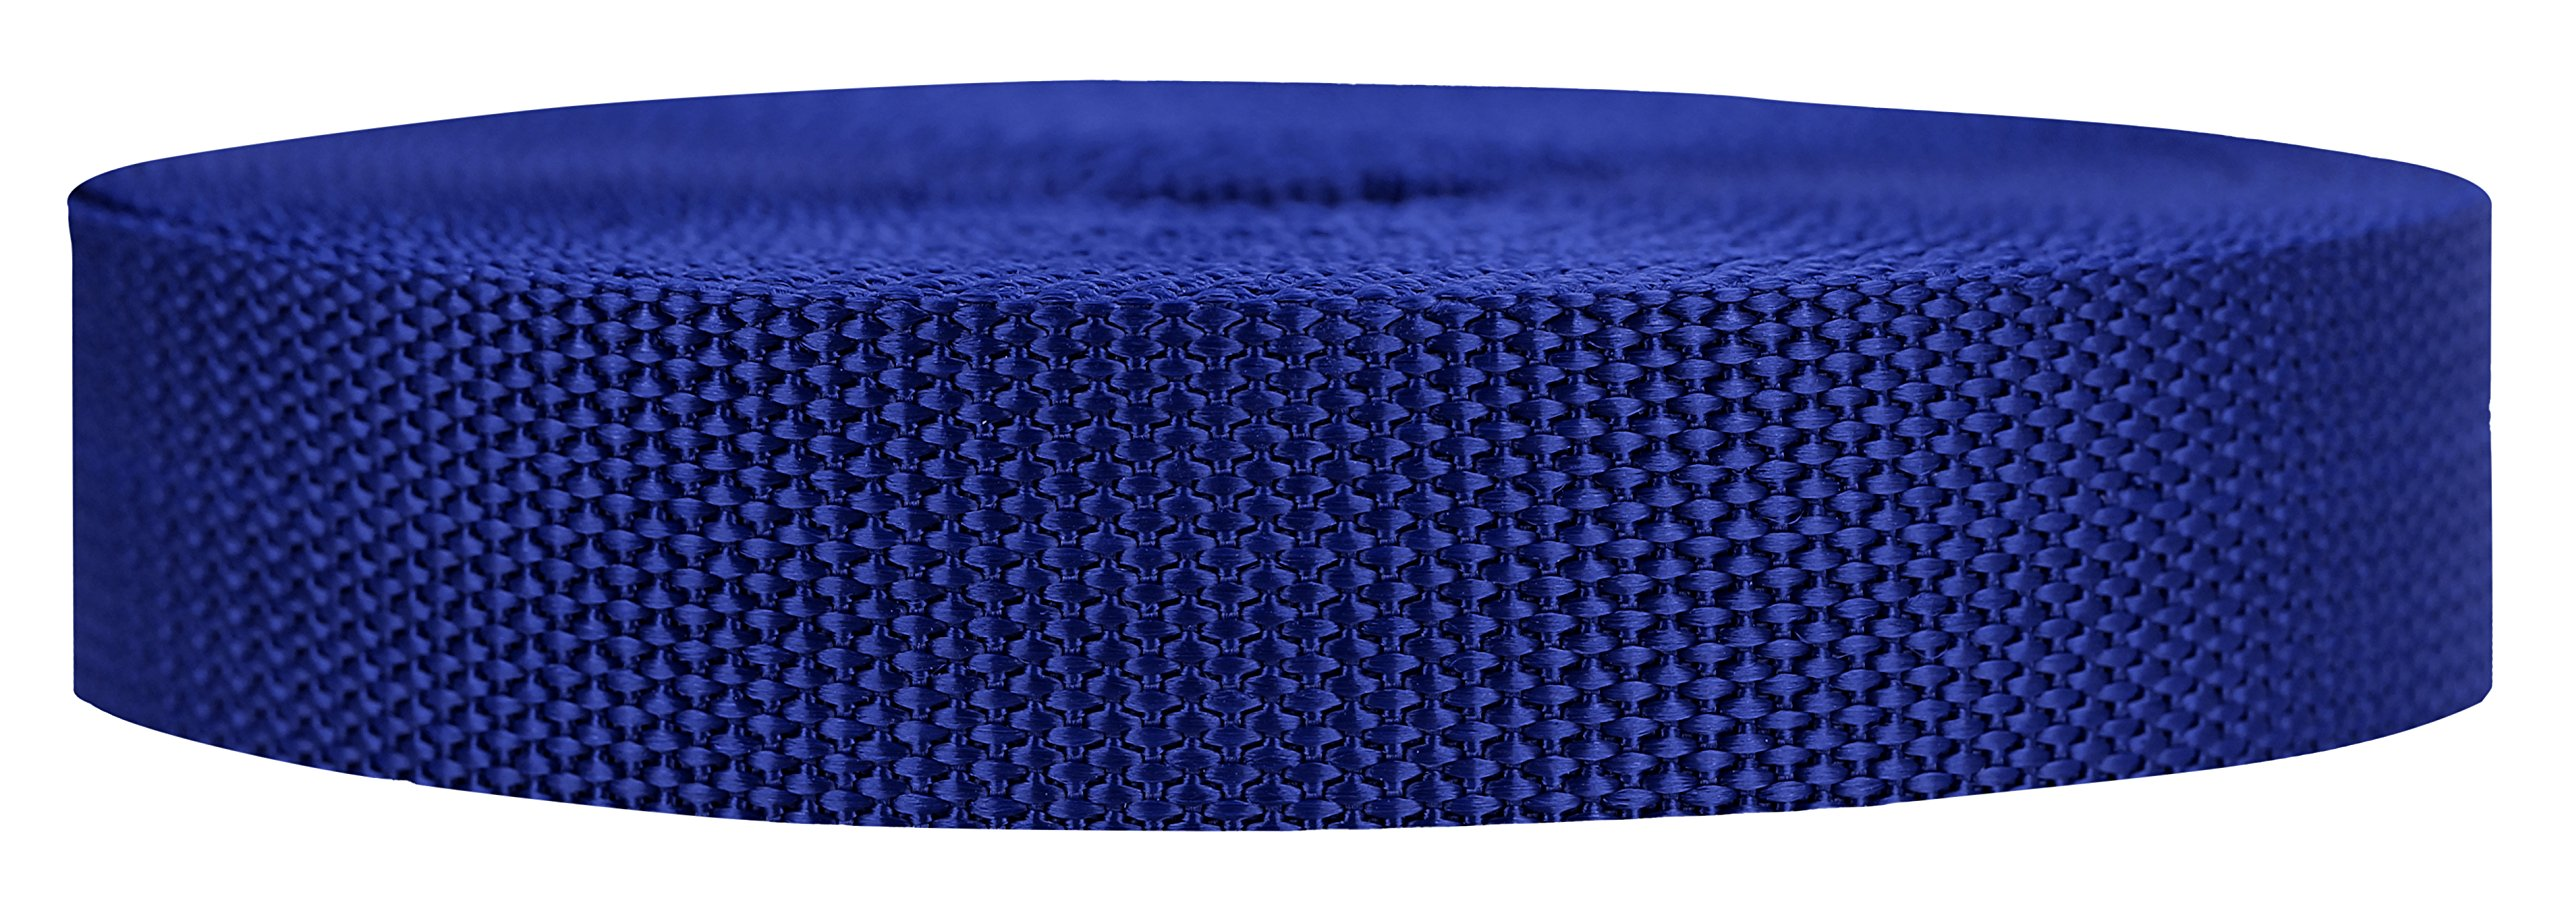 Strapworks Heavyweight Polypropylene Webbing - Heavy Duty Poly Strapping for Outdoor DIY Gear Repair, 1 Inch x 10 Yards - Navy Blue